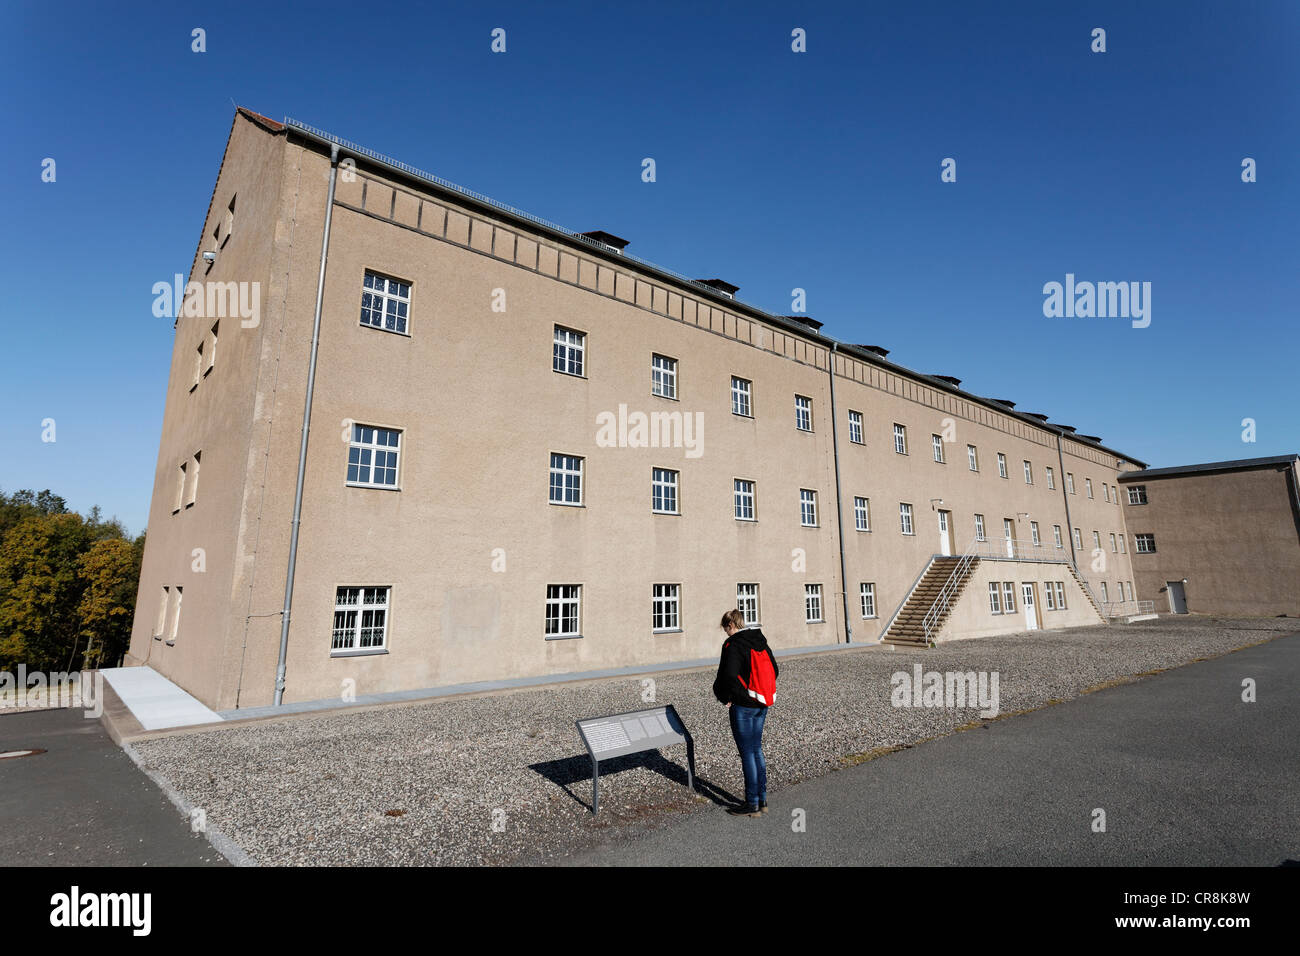 Chamber building or depot of possessions, Buchenwald memorial, former concentration camp near Weimar, Thuringia, Stock Photo